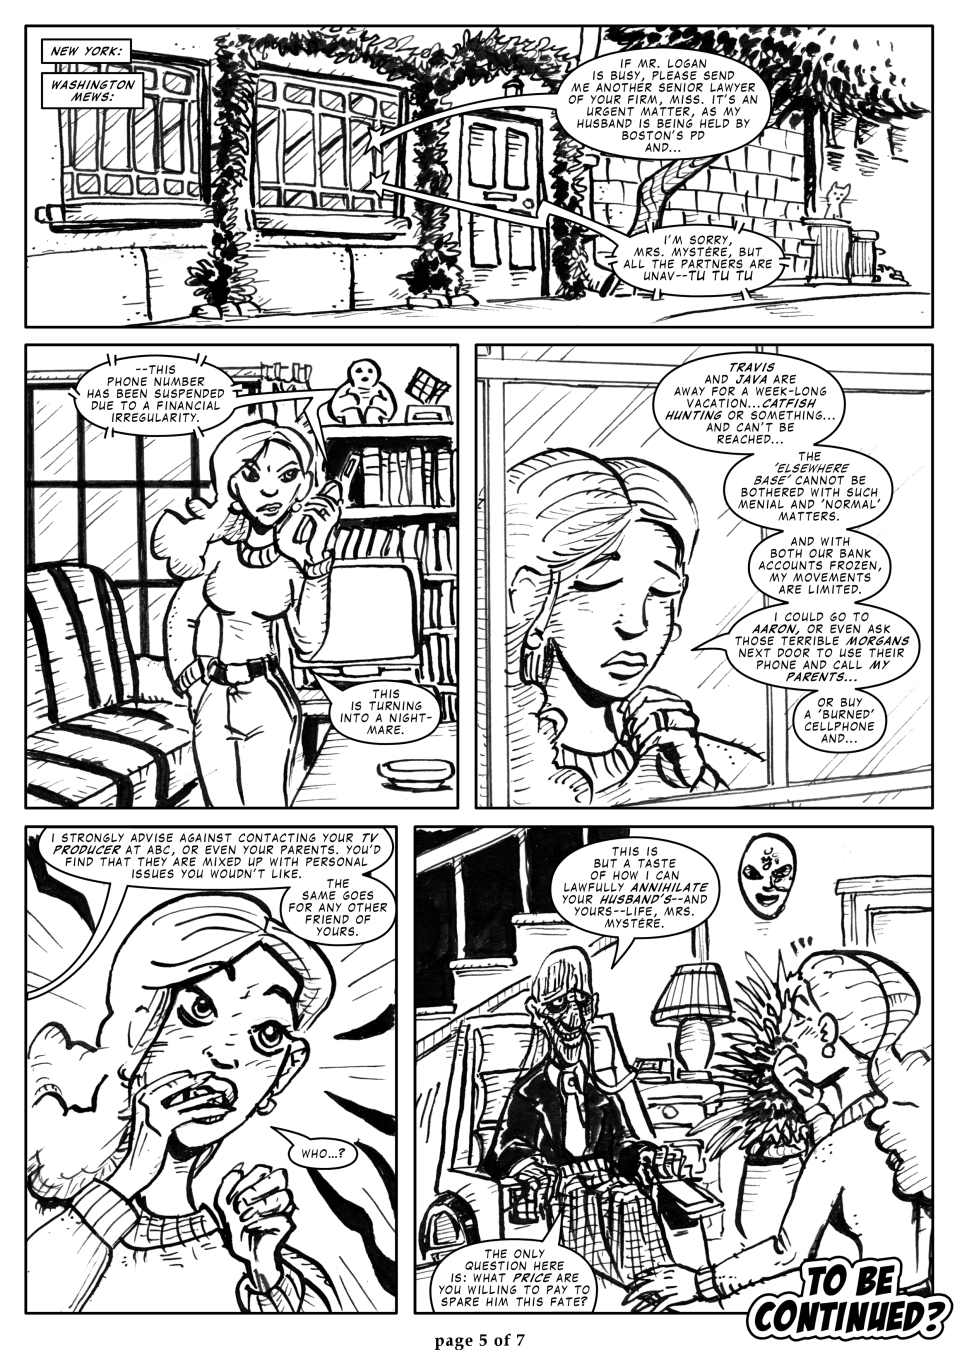 GAL 26 - That Which Is Not Dead 2 - p05